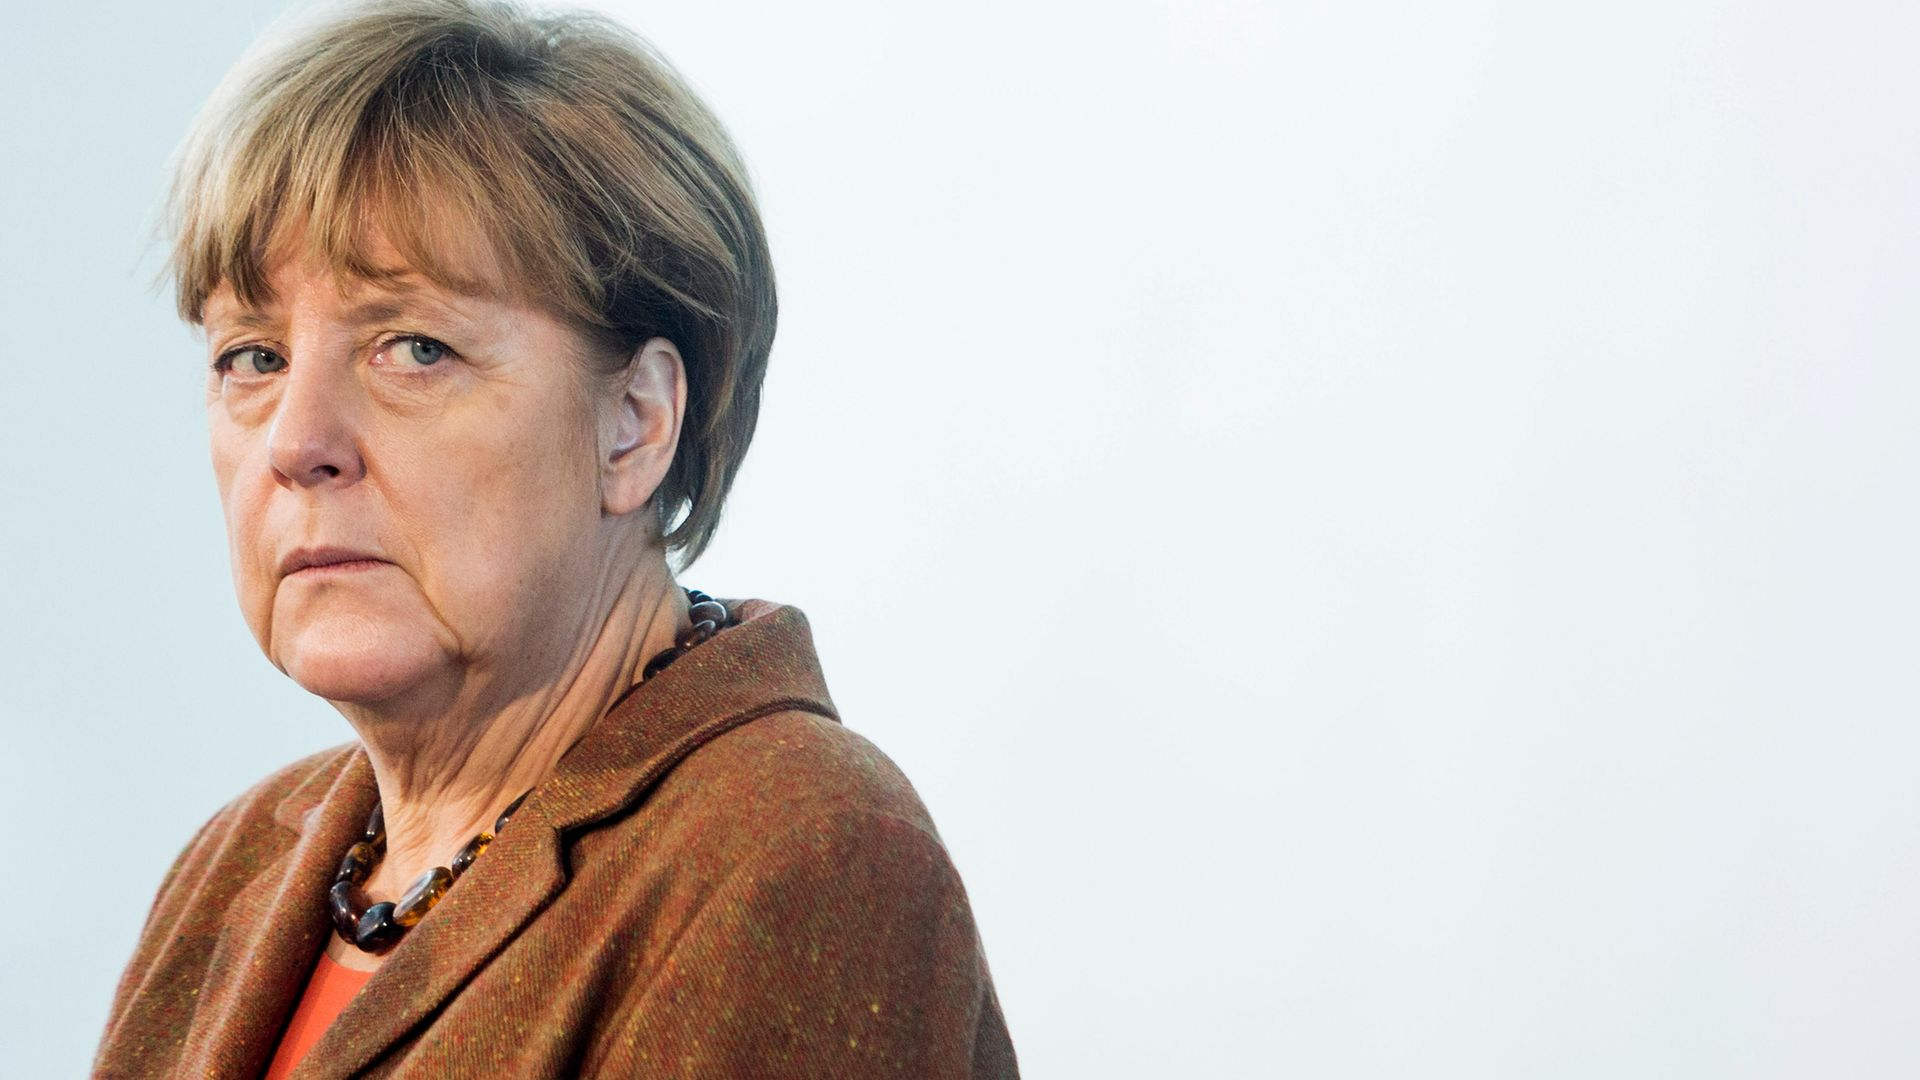 German chancellor Angela Merkel in 2015 (Photo by Zick,Jochen-Pool/Getty Images) - Credit: Getty Images